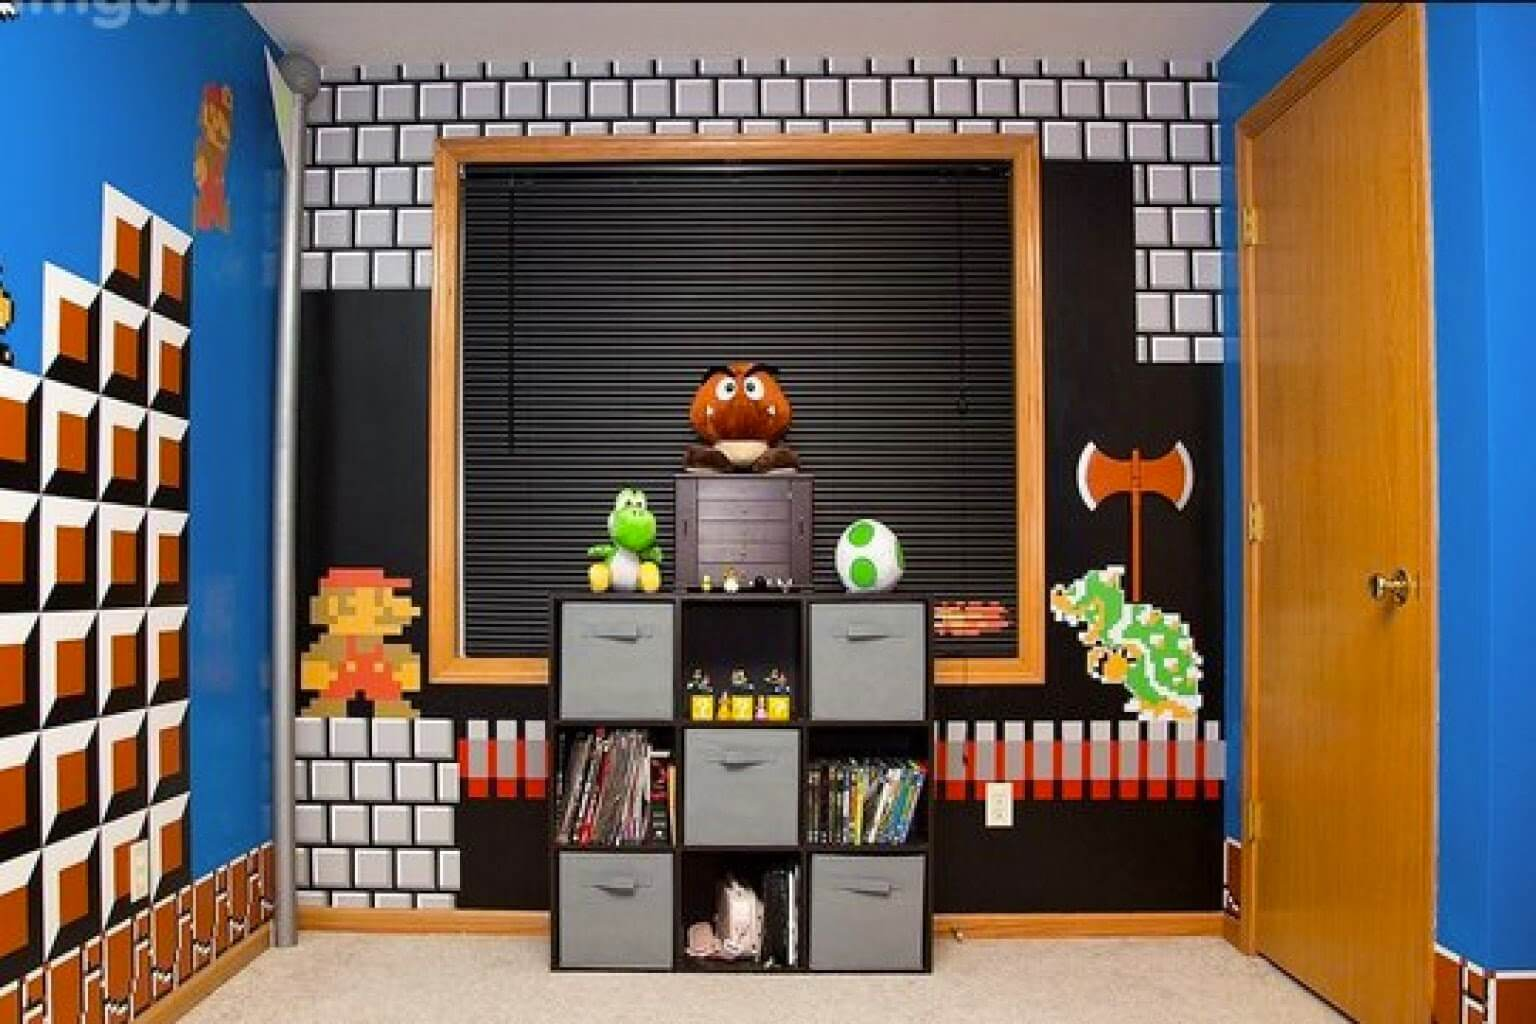 50  Best Setup of Video Game Room Ideas [A Gameru0027s Guide]